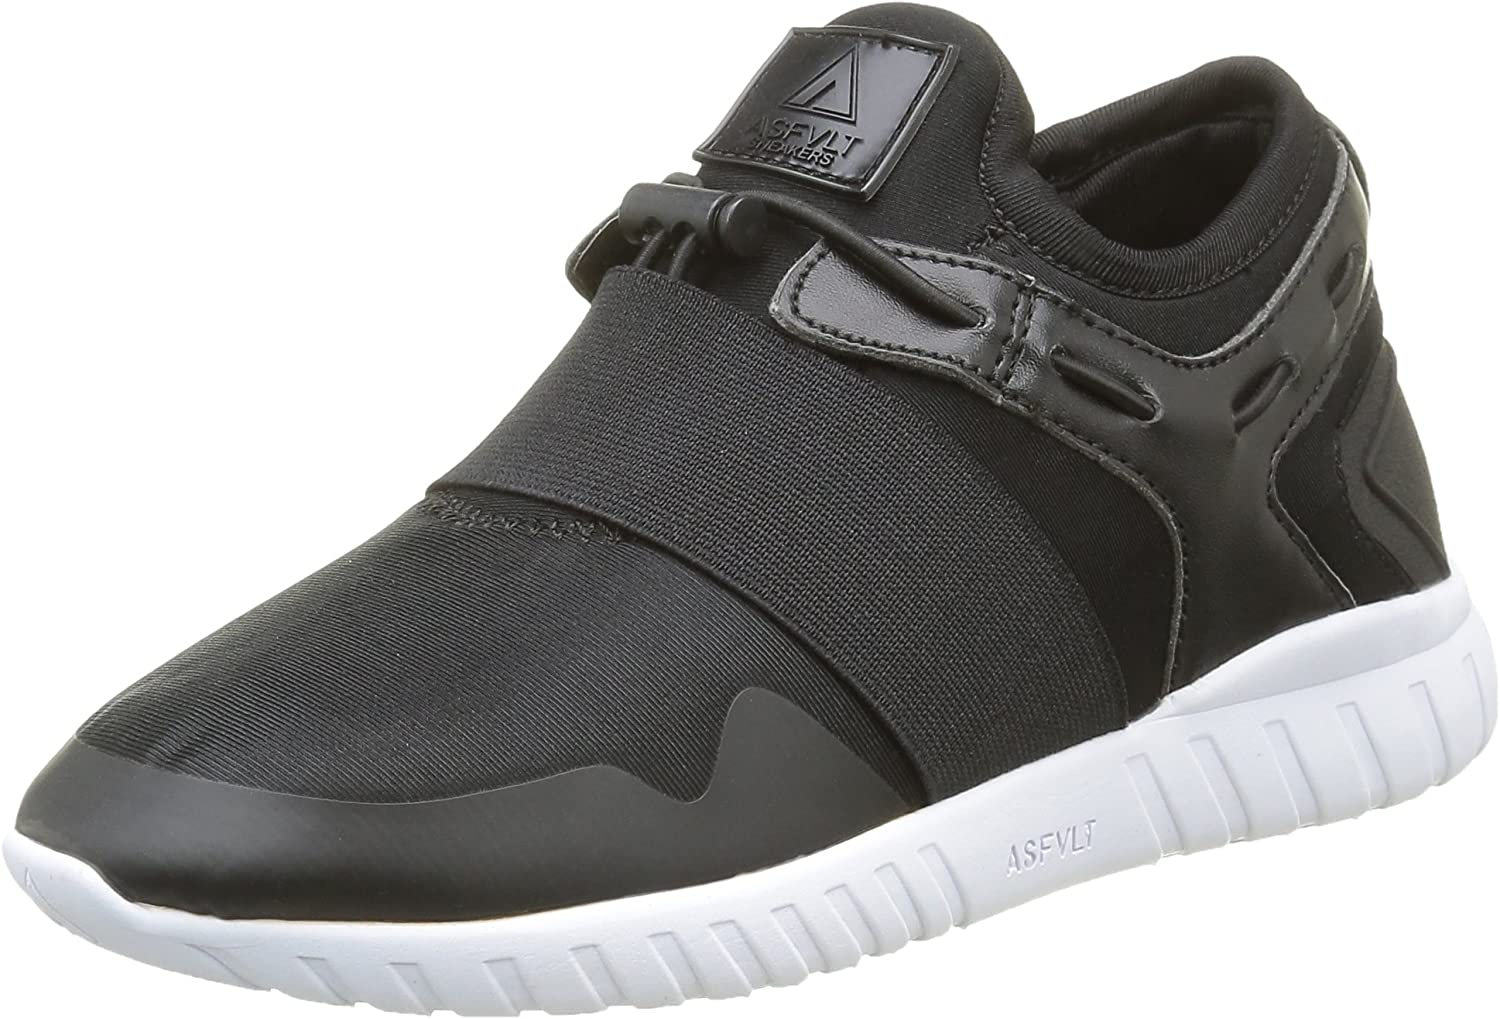 Asfvlt Area Mid, Unisex Adults' Low-Top Sneakers